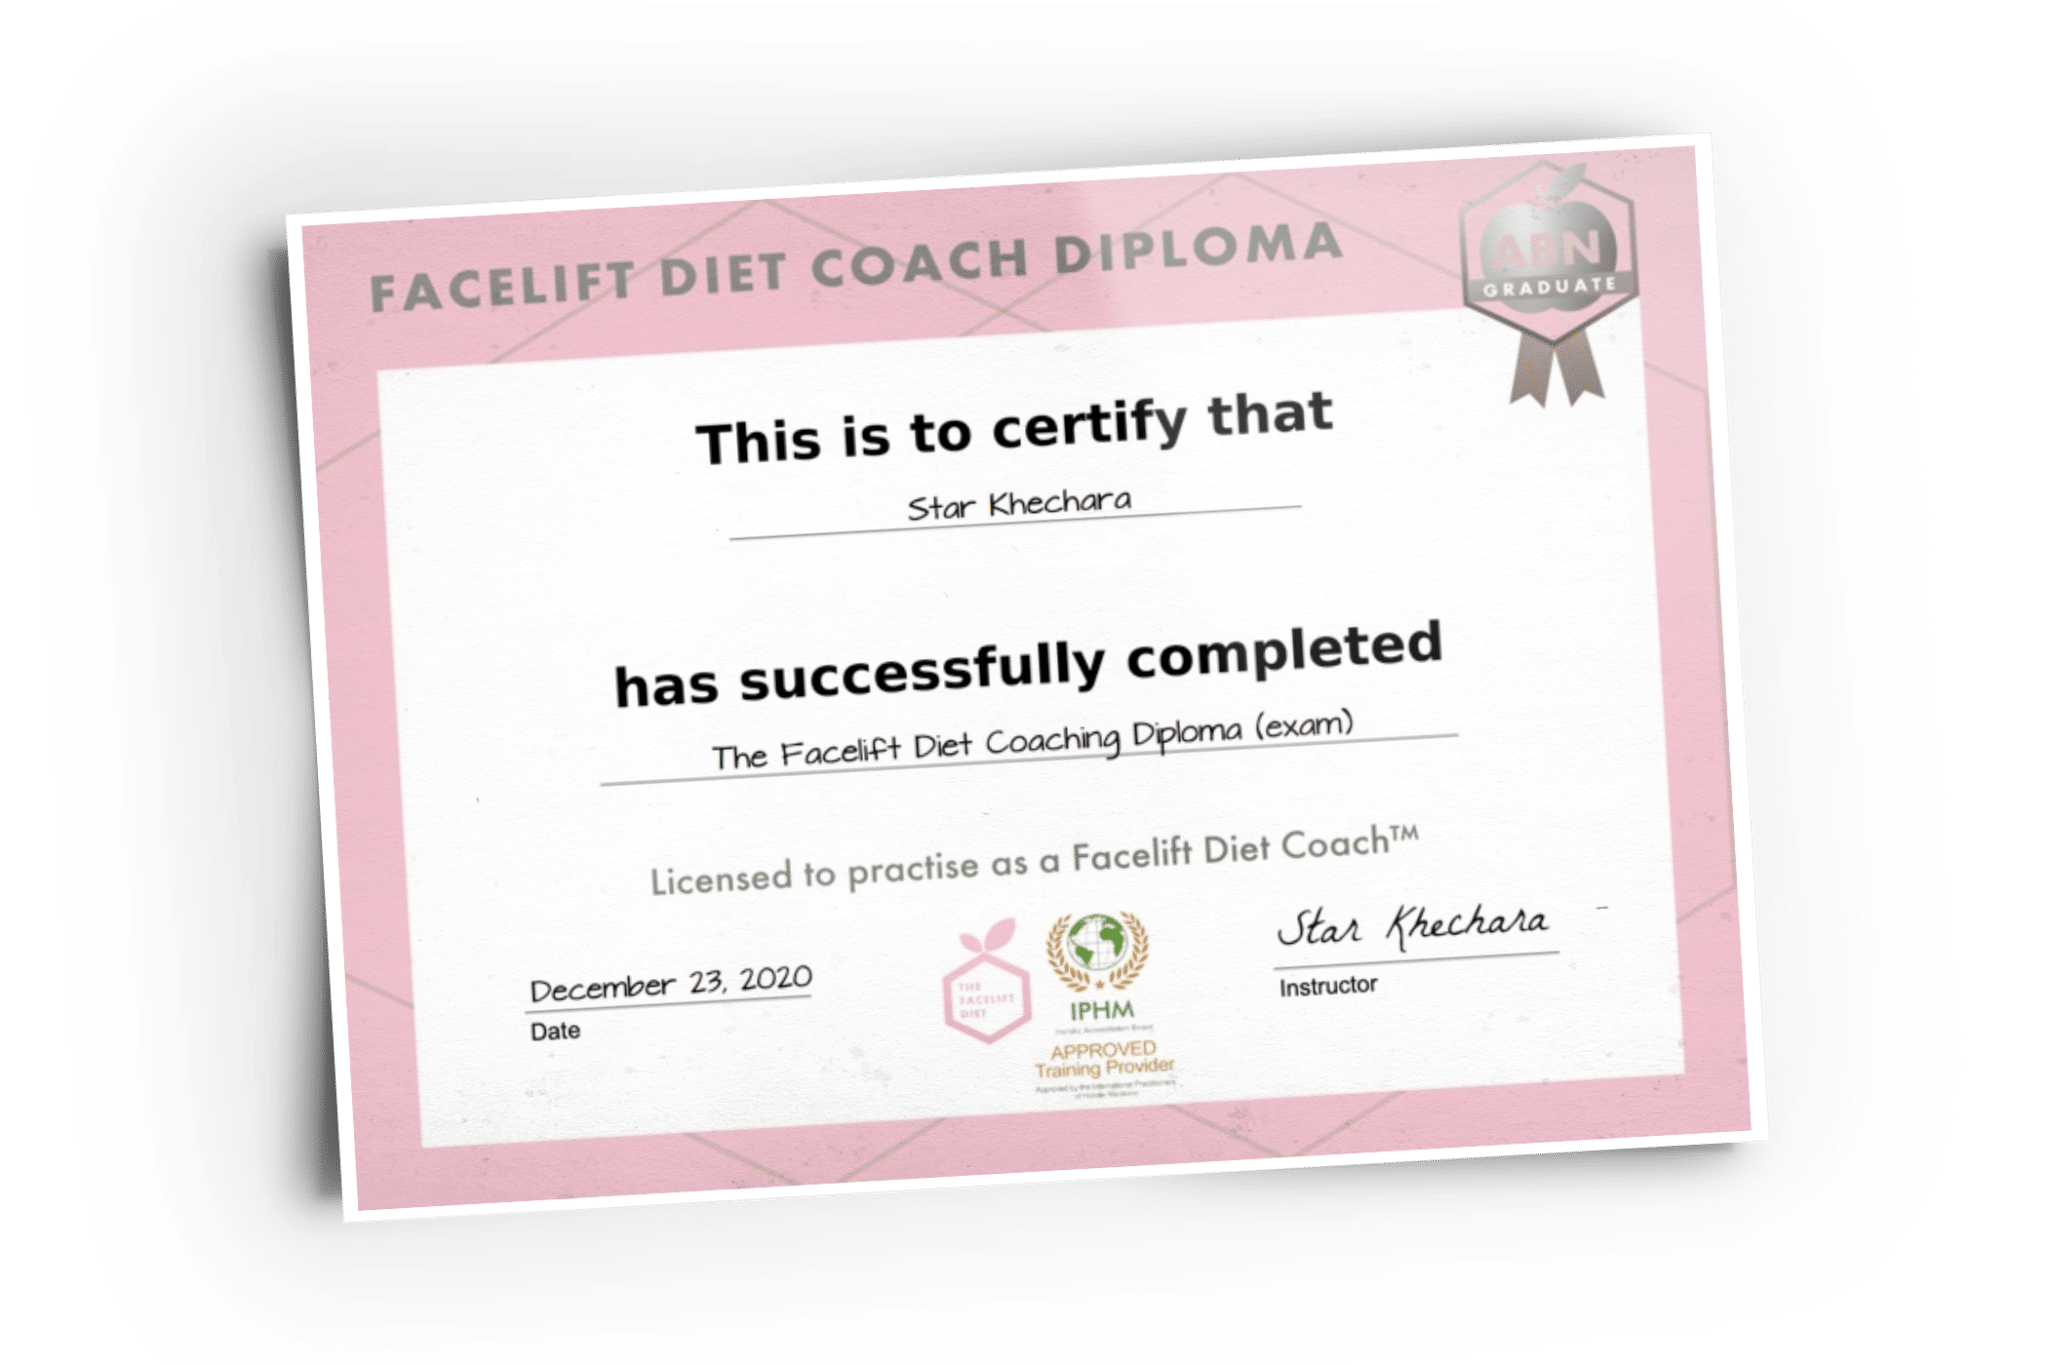 Facelift Diet Coach Diploma (certificate graphic)